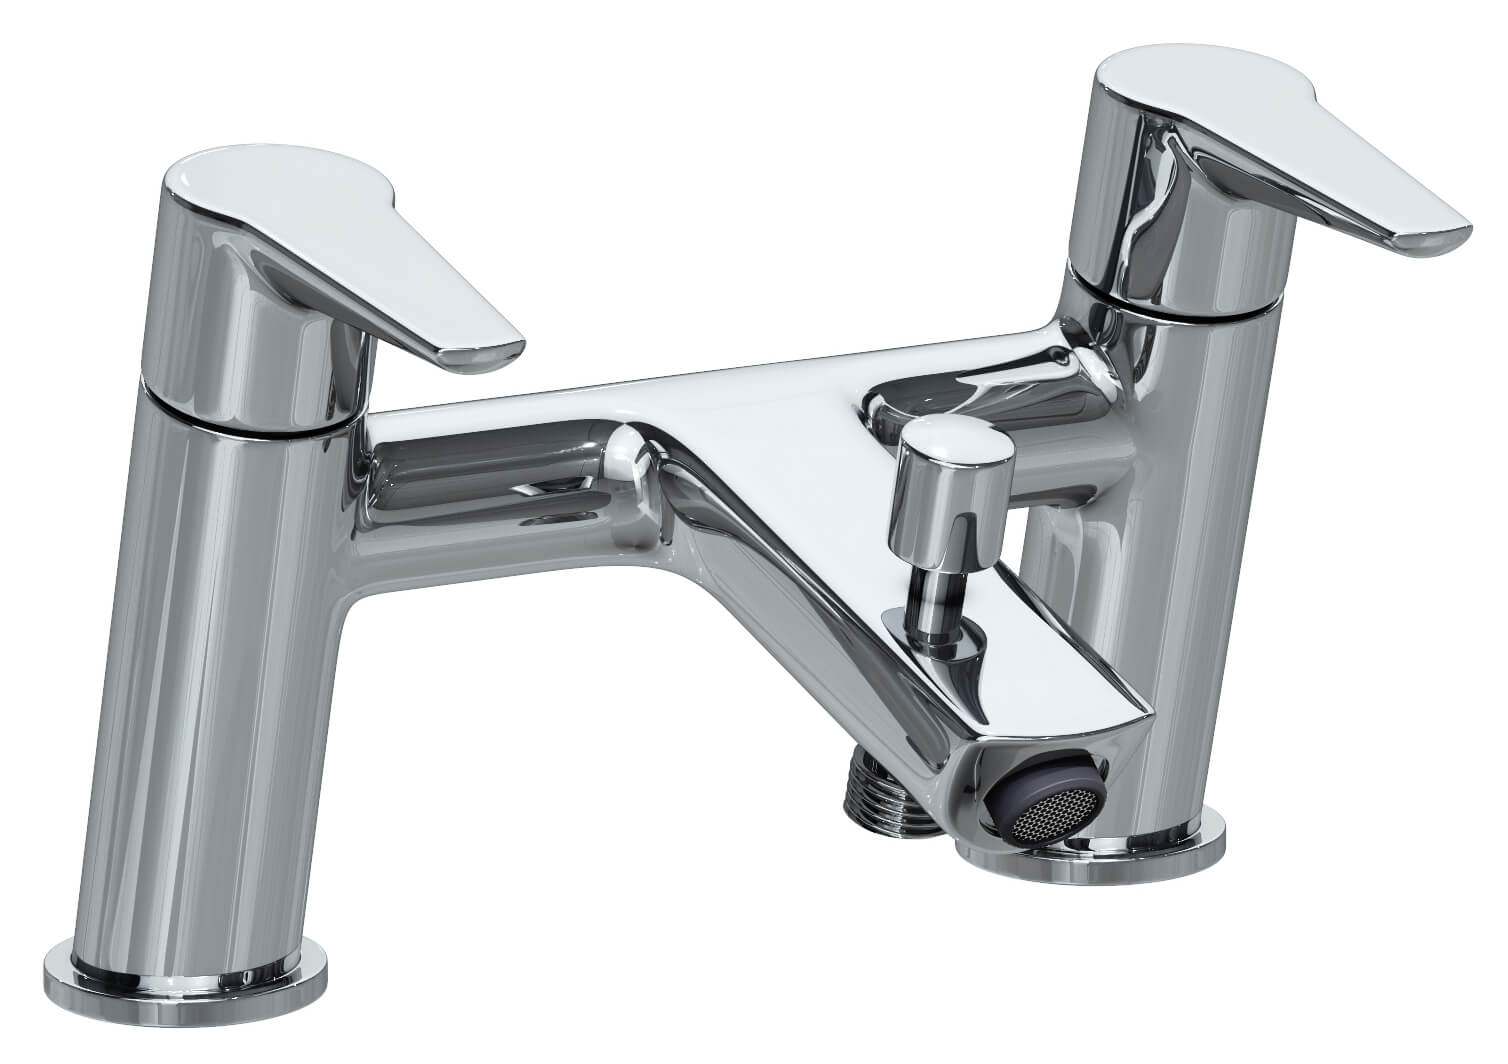 VitrA Solid S Deck Mounted Bath Shower Mixer Tap